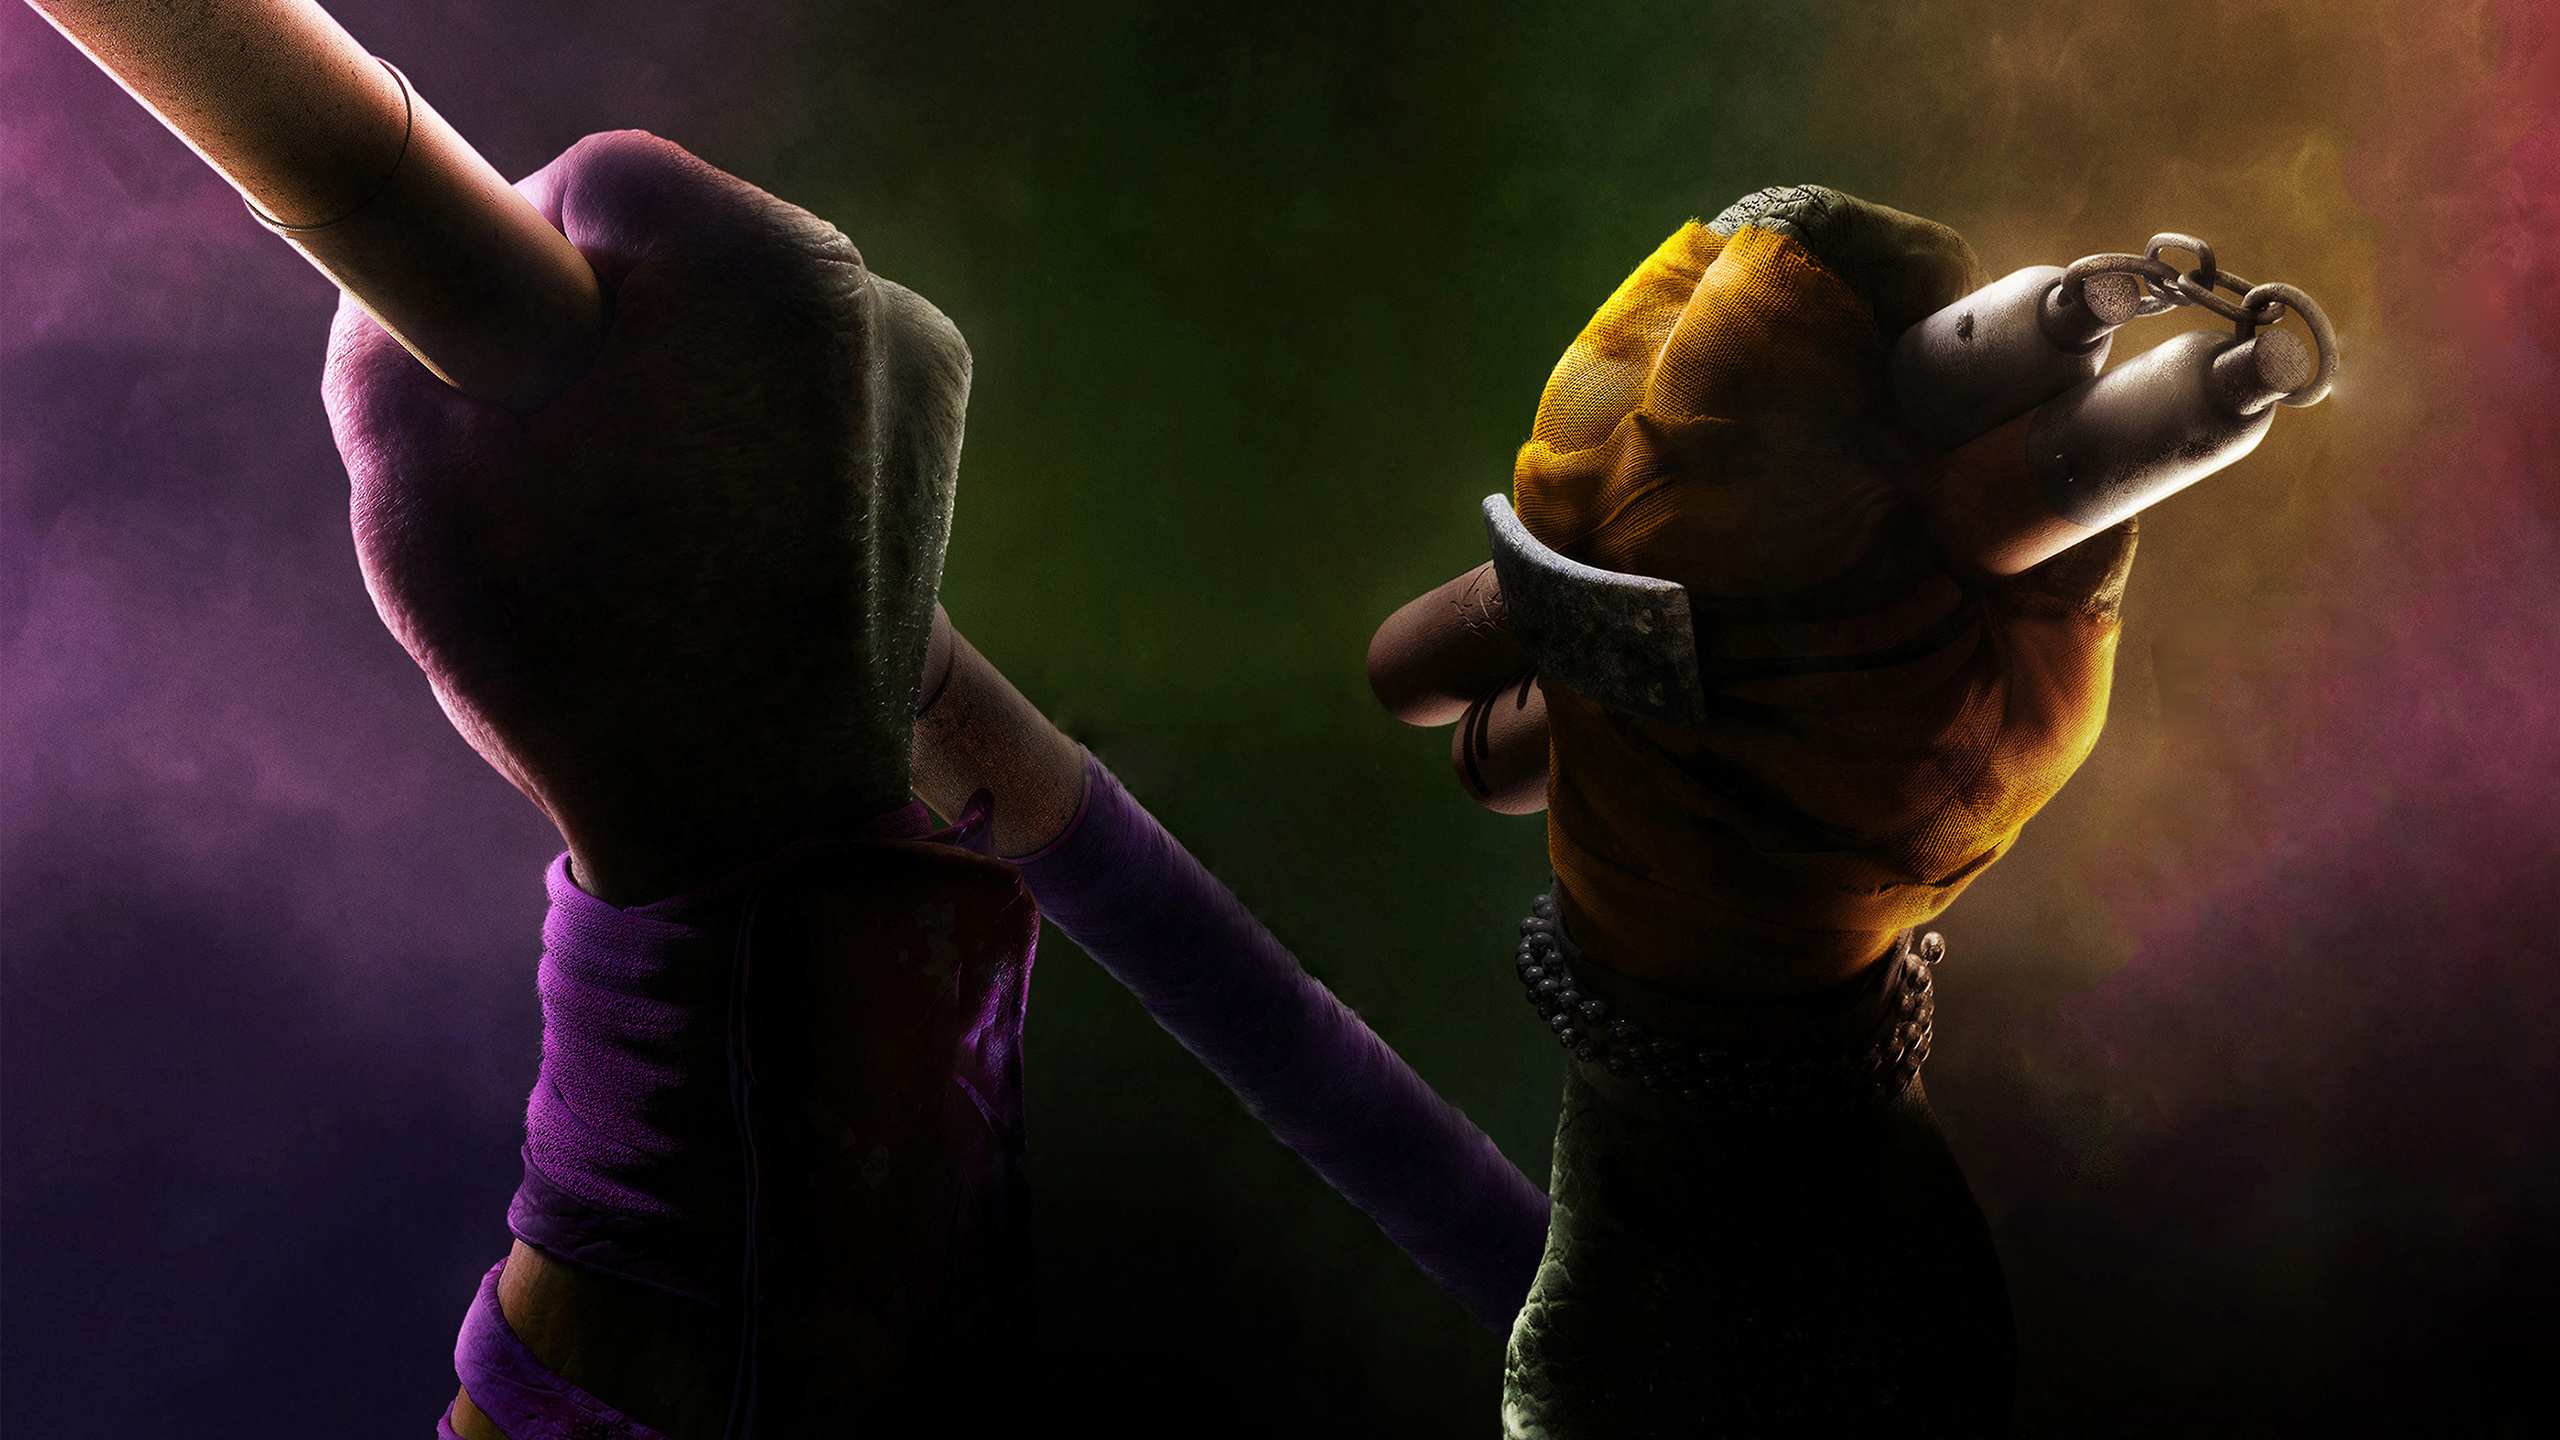 Free Download Back Images For Teenage Mutant Ninja Turtles 2014 Poster Donatello 2560x1440 For Your Desktop Mobile Tablet Explore 41 Ninja Turtles 2014 Wallpaper Teenage Mutant Ninja Turtles Wallpaper Tmnt Wallpaper Turtle Wallpaper